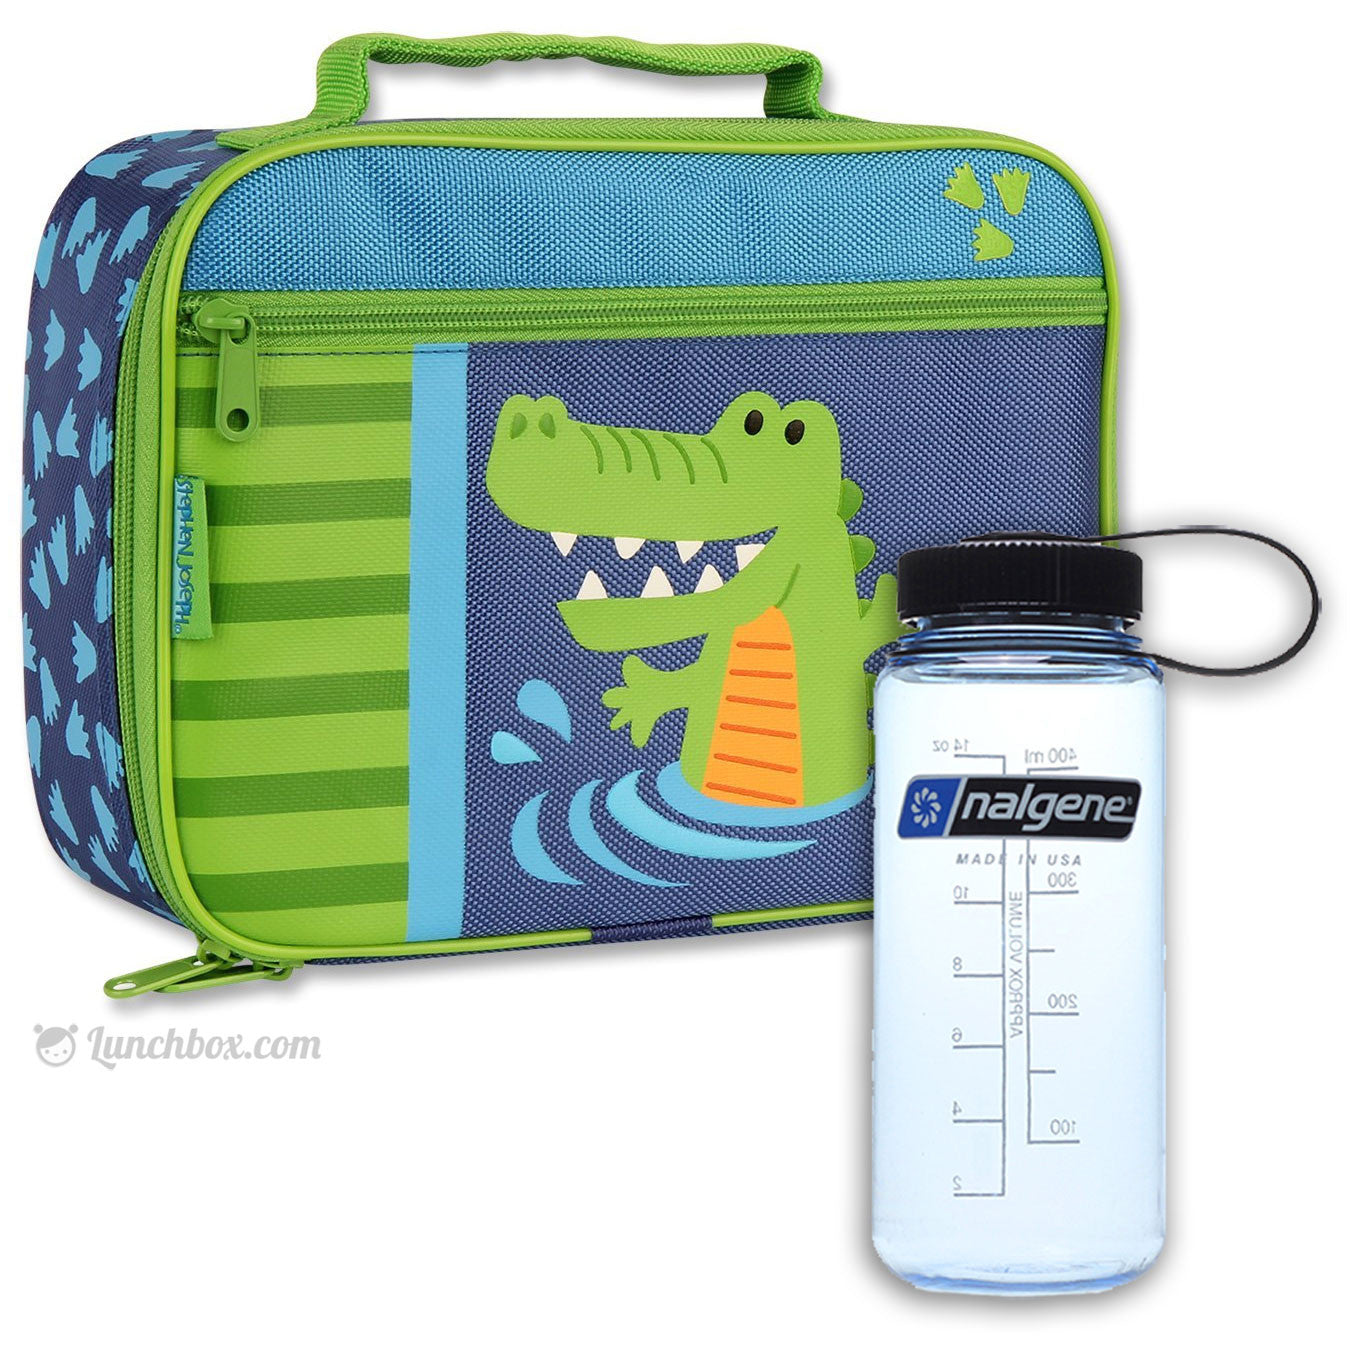 Alligator Lunchbox with Thermos Bottle